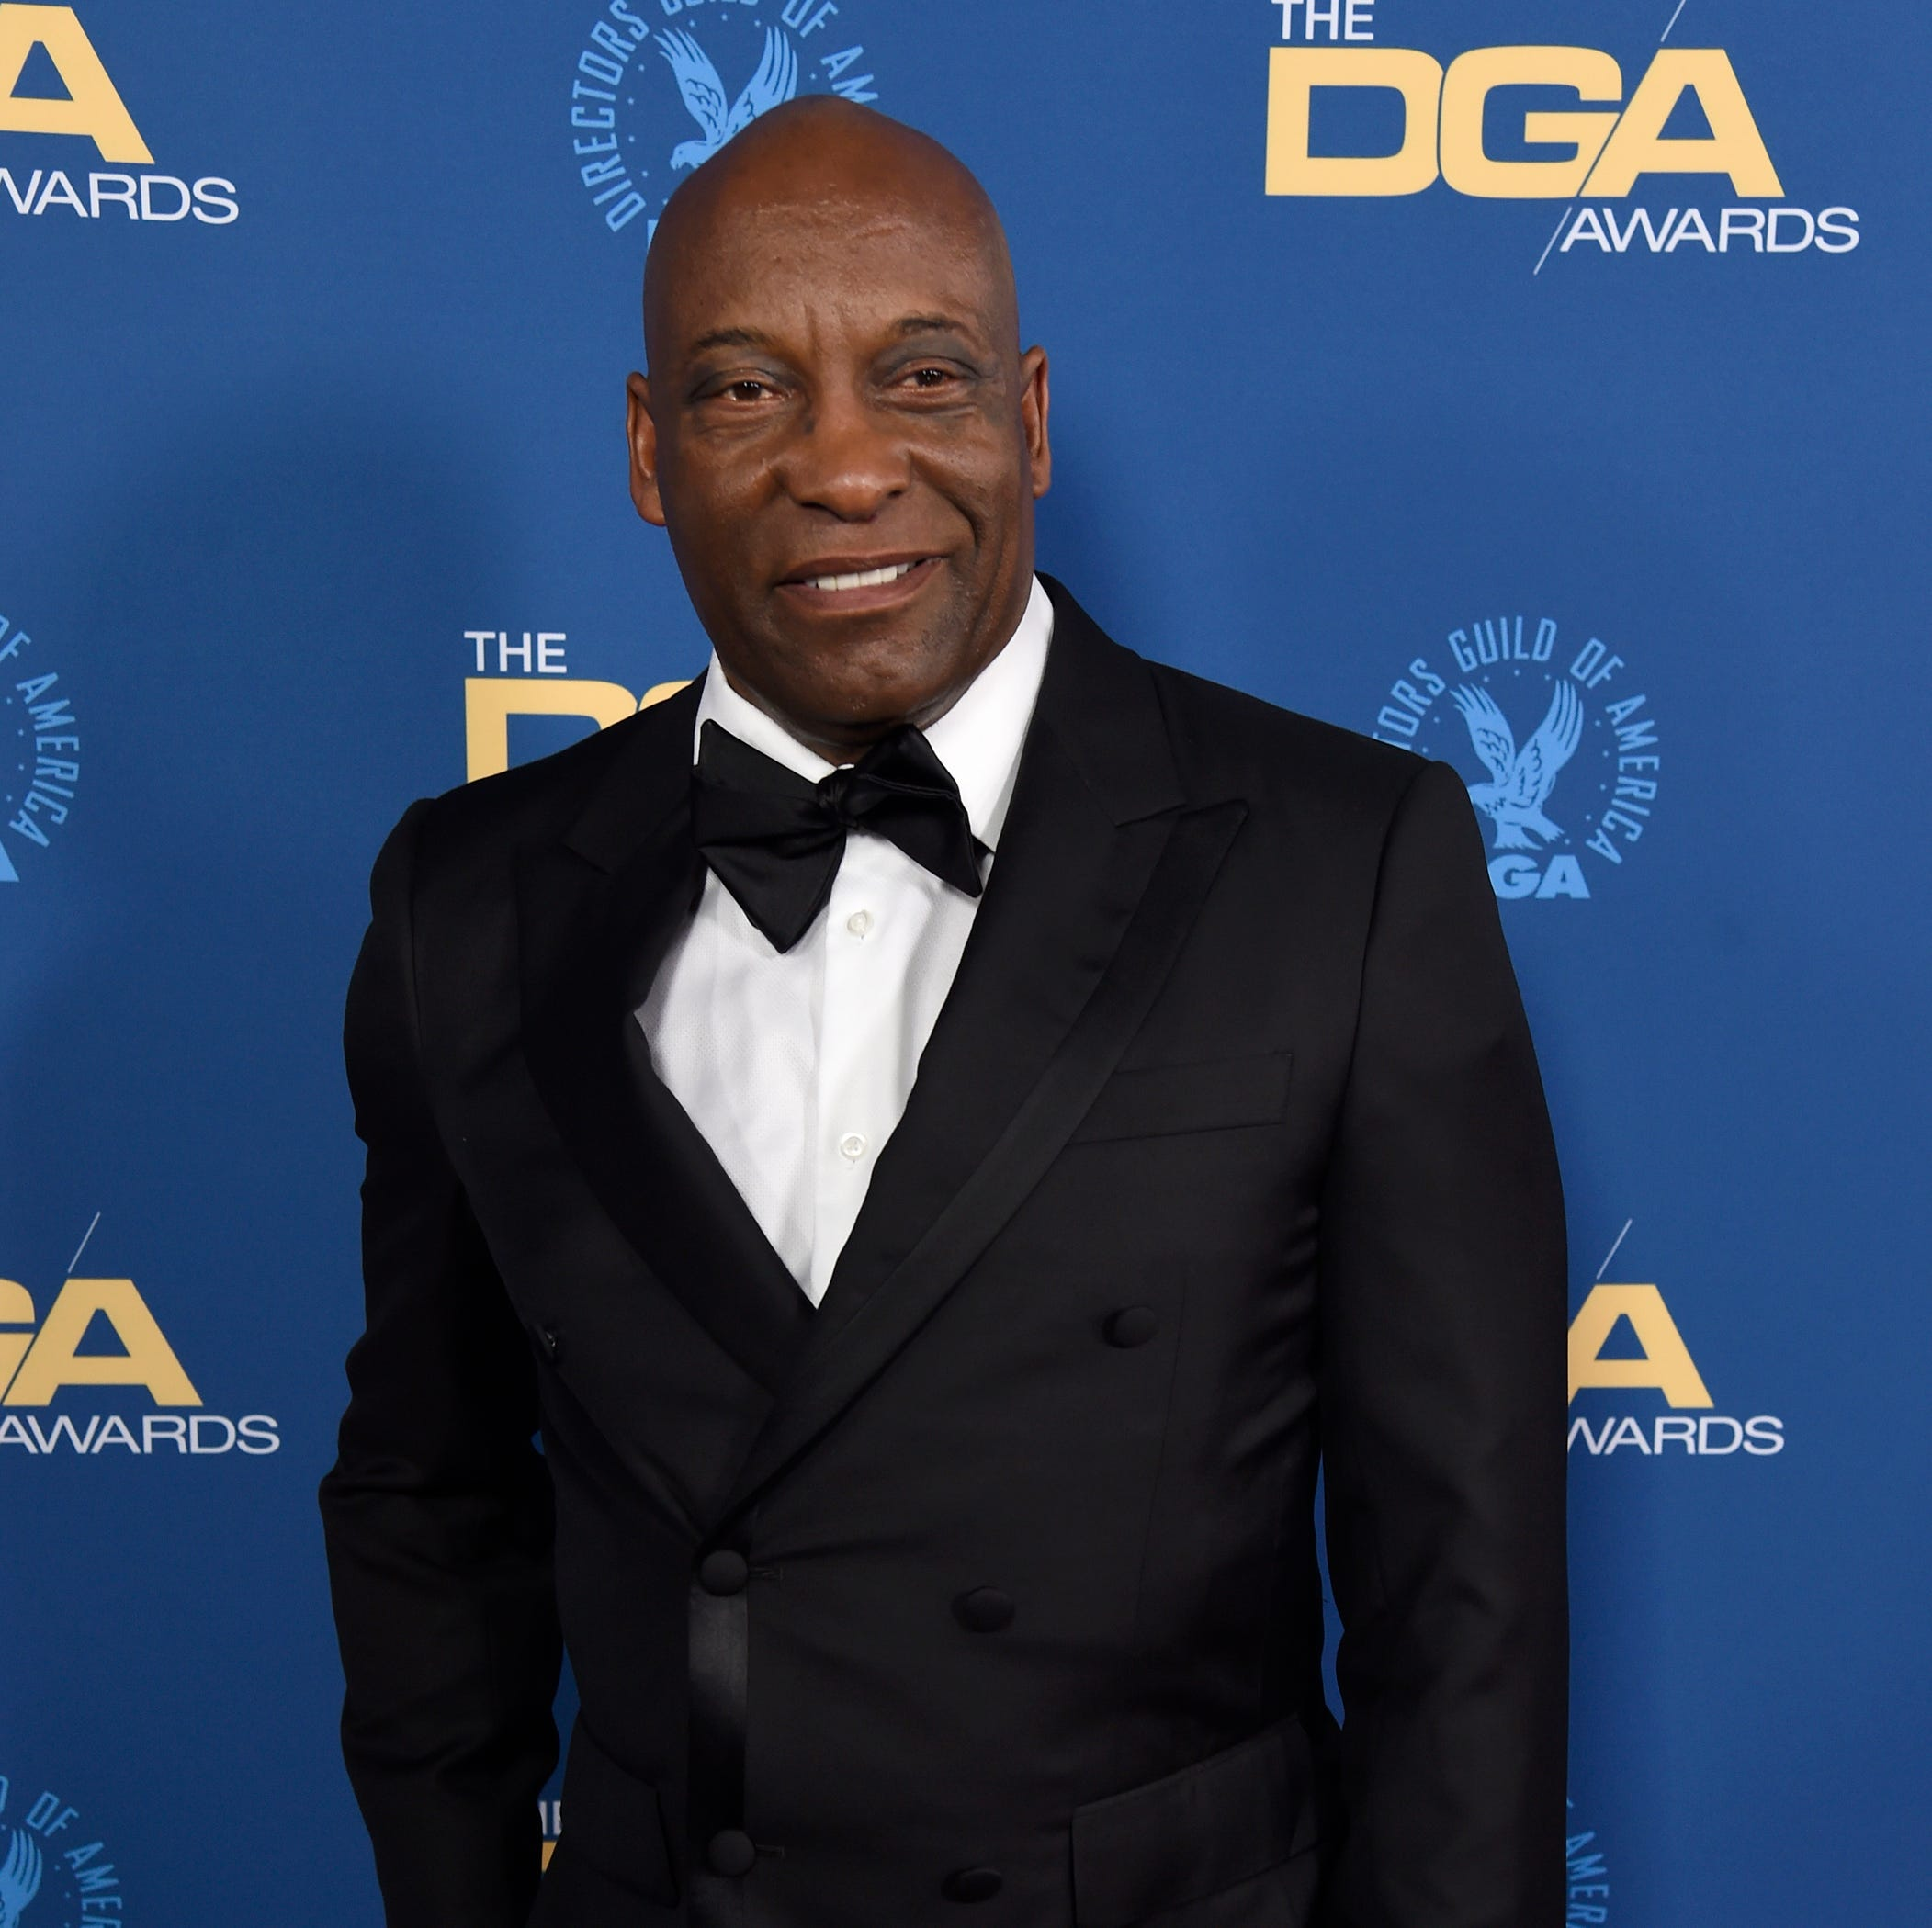 'He unzipped our souls:' John Singleton was an icon who showed black stories matter